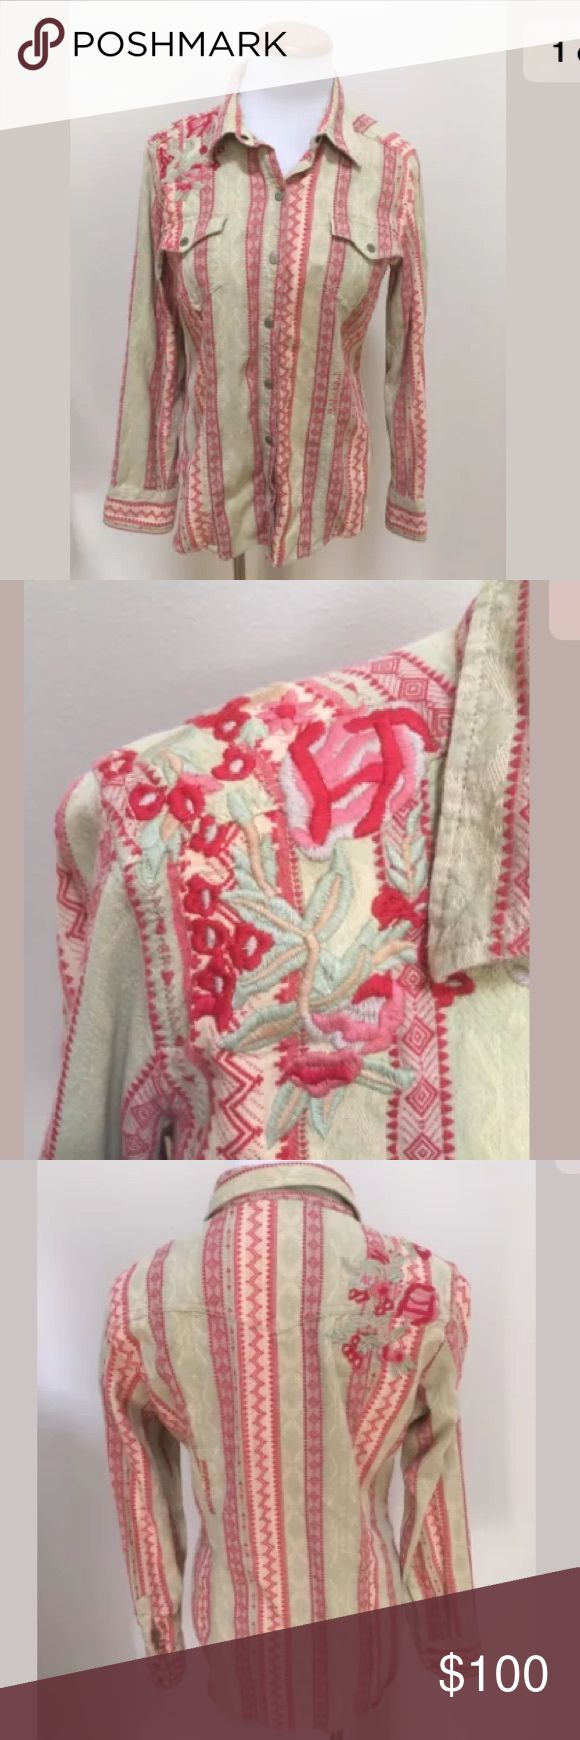 Ryan Michael Striped Embroidered Western Shirt M Ryan Michael Red Green Striped Embroidered Women's Western Shirt Blouse Medium. Excellent condition! Clean and comes from smoke free home. Questions welcomed! Ryan Michael Tops Button Down Shirts